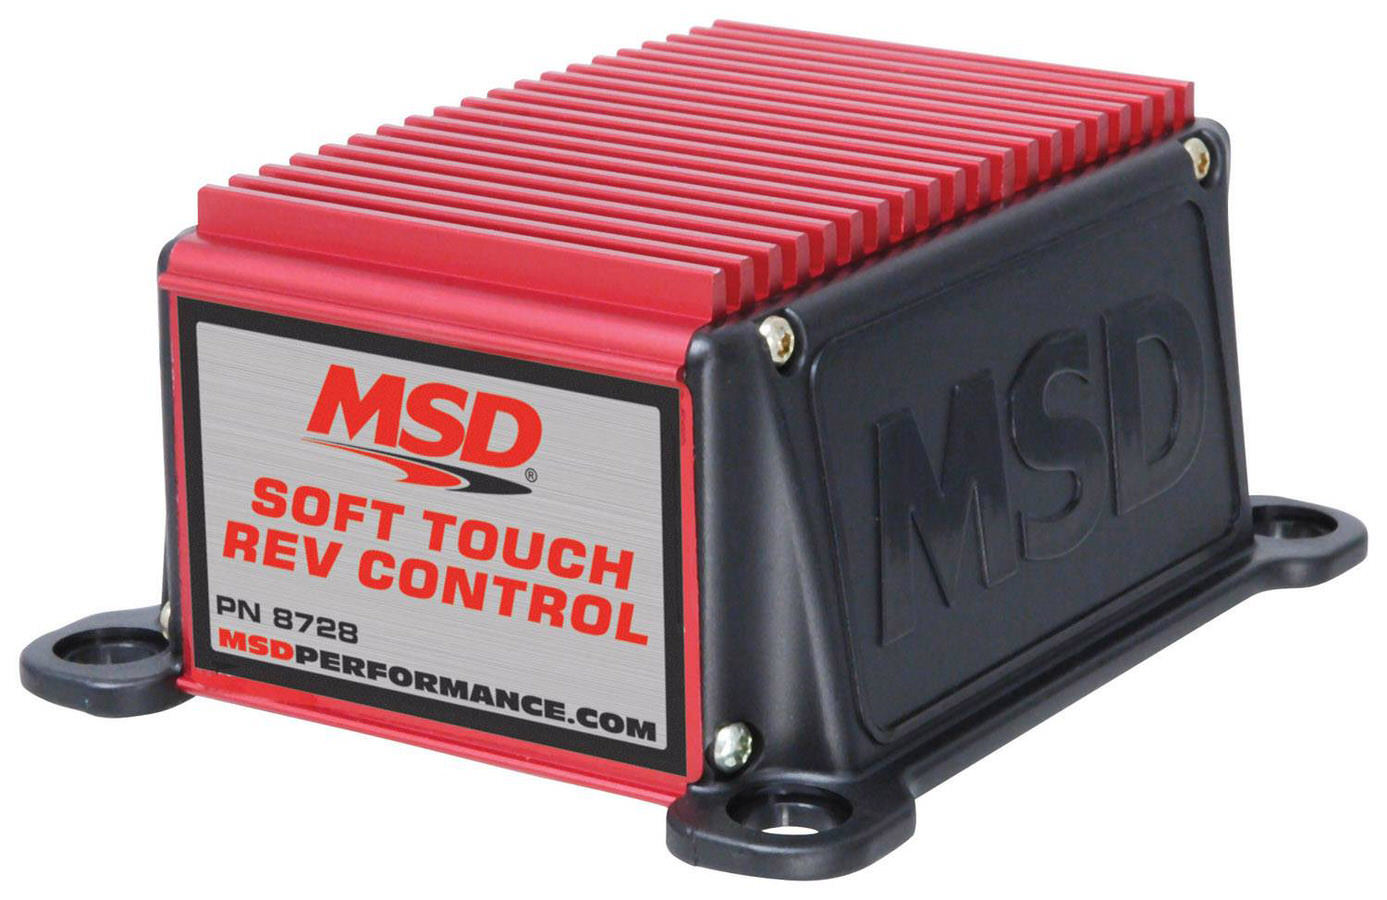 MSD Ignition 8728 Rev Limiter, Soft Touch Rev Control, Chip Adjustable, 6000 / 7000 / 8000 RPM Modules, Standard Points Ignition Systems, Each